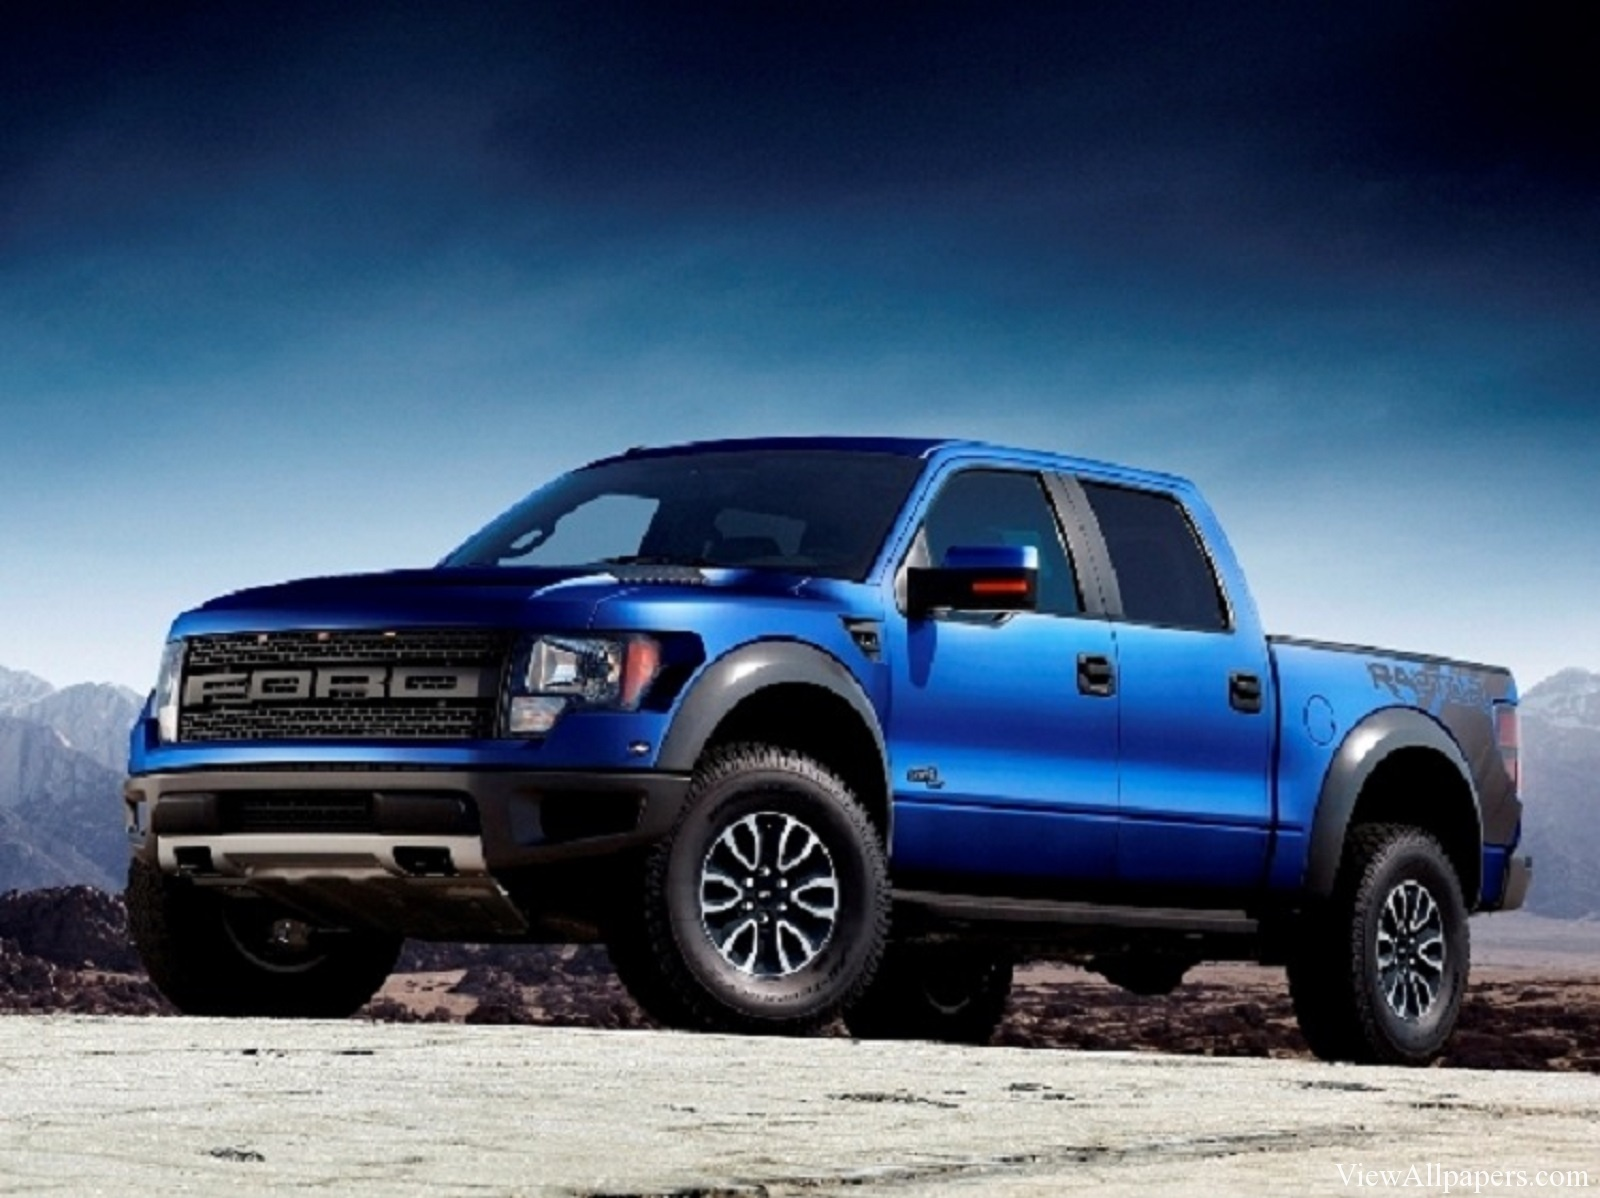 Ford Raptor Photos High Resolution Wallpaper download 2016 Ford 1600x1198